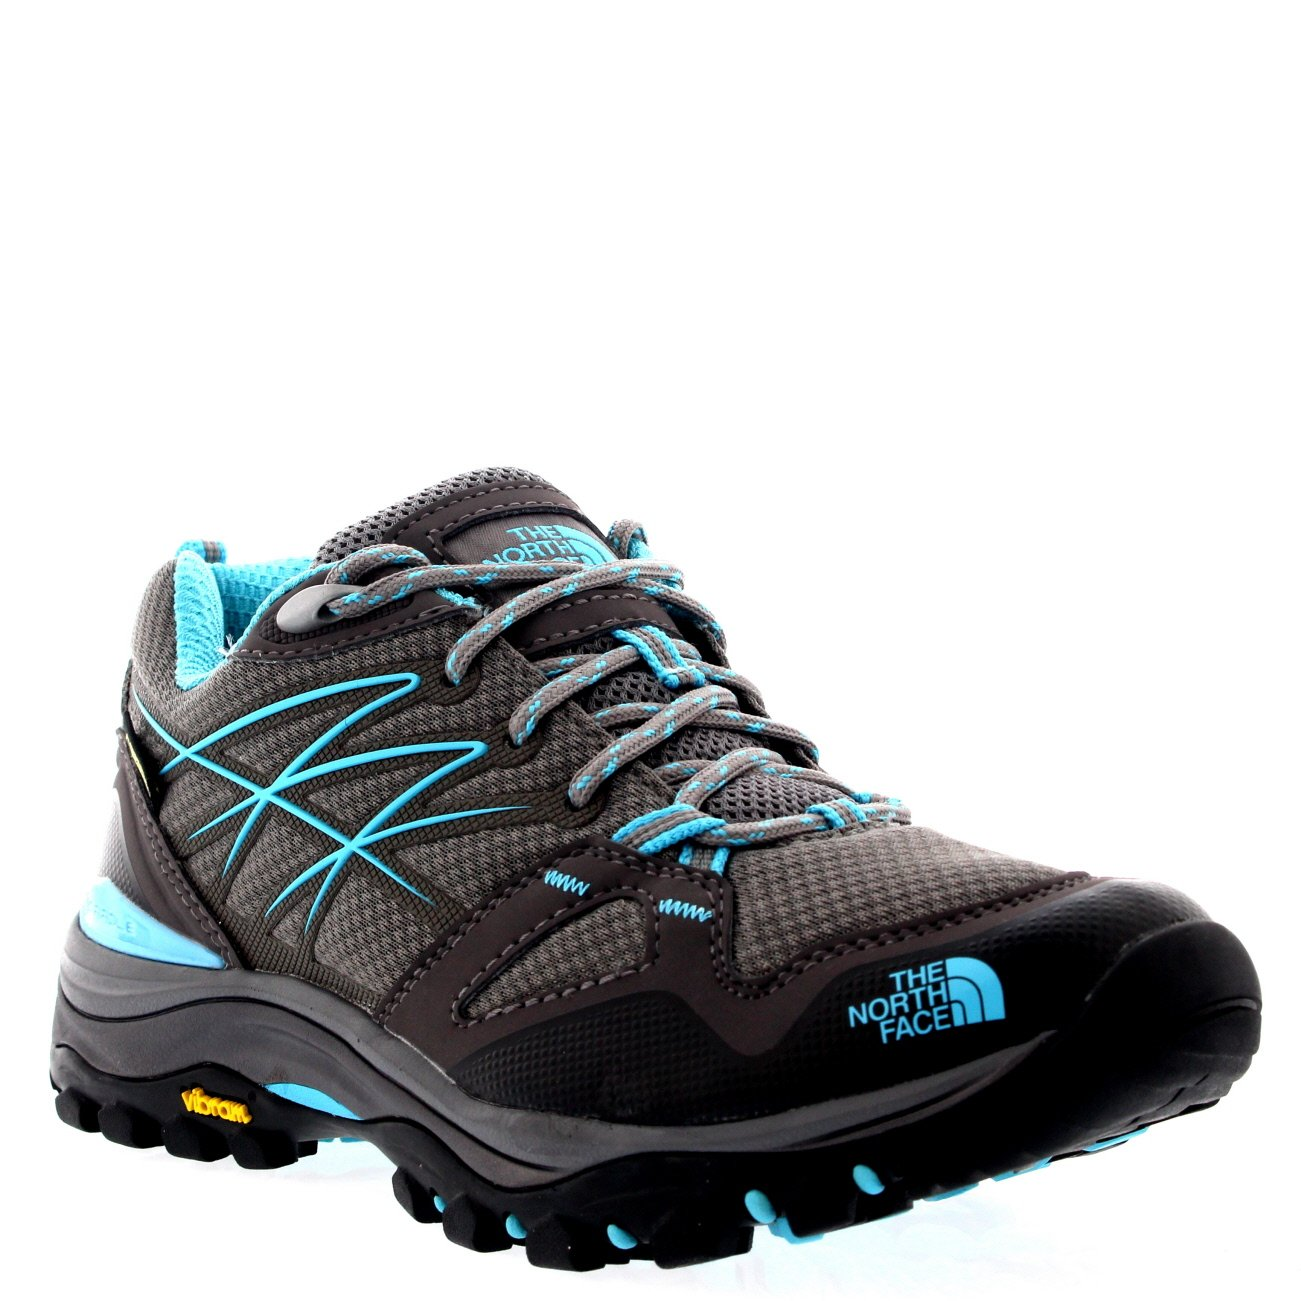 b0382b03fc8 THE NORTH FACE Men  s Hedgehog Fastpack GTX (EU) Low Rise Hiking Boots  T0CXT3